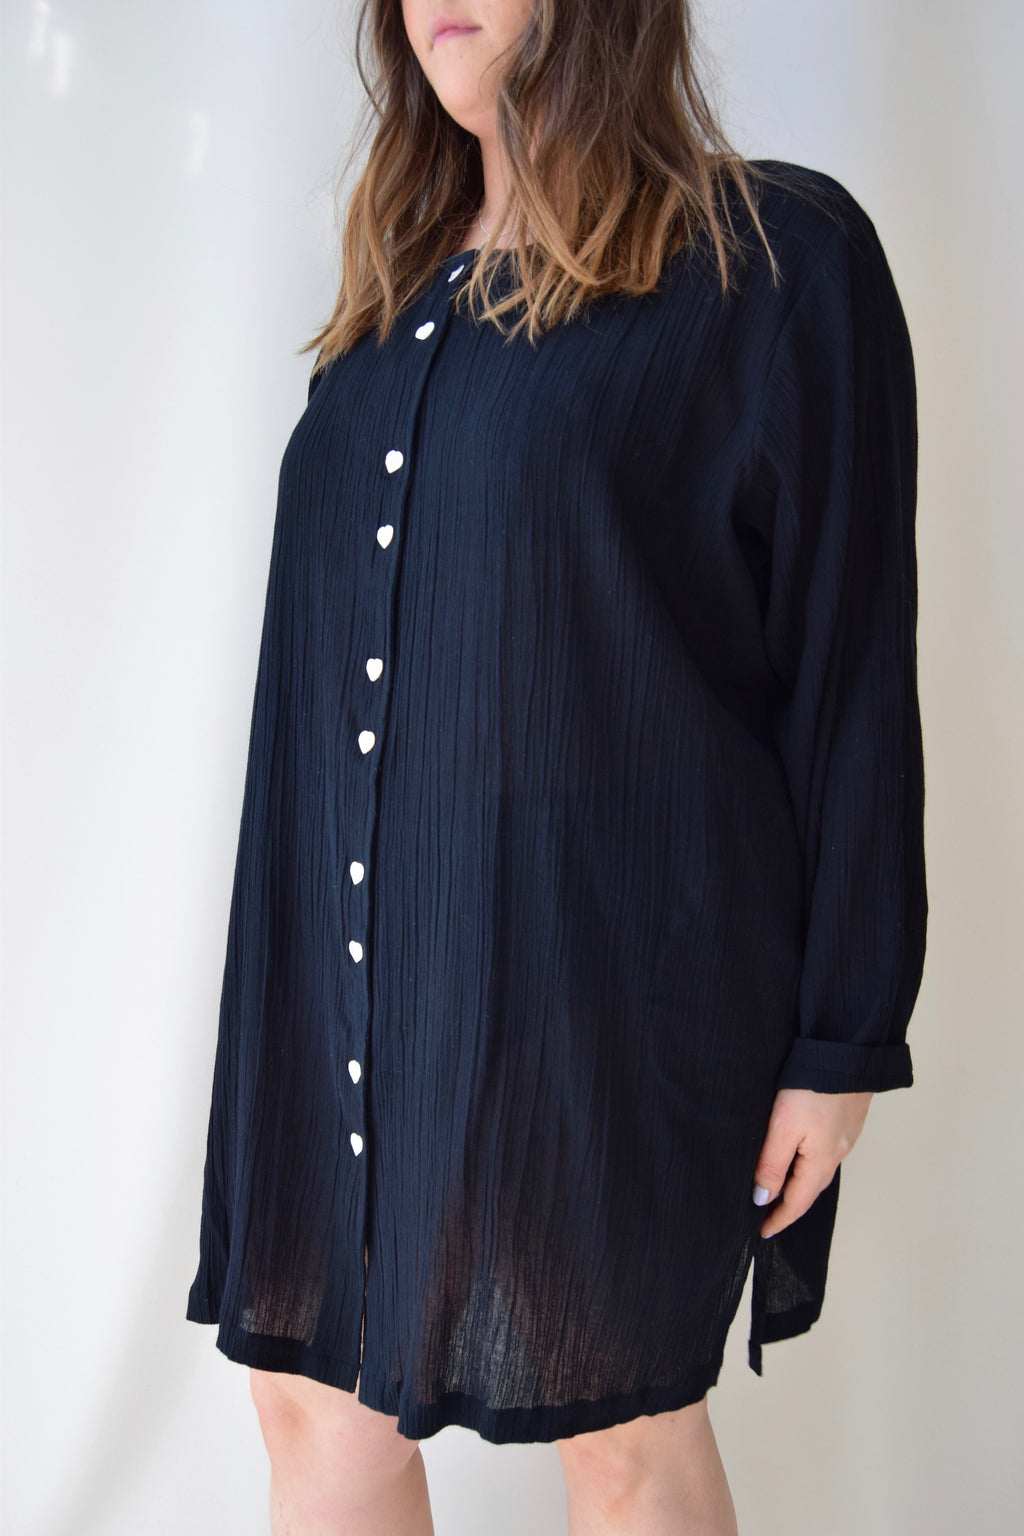 Black Indian Cotton Tunic Dress